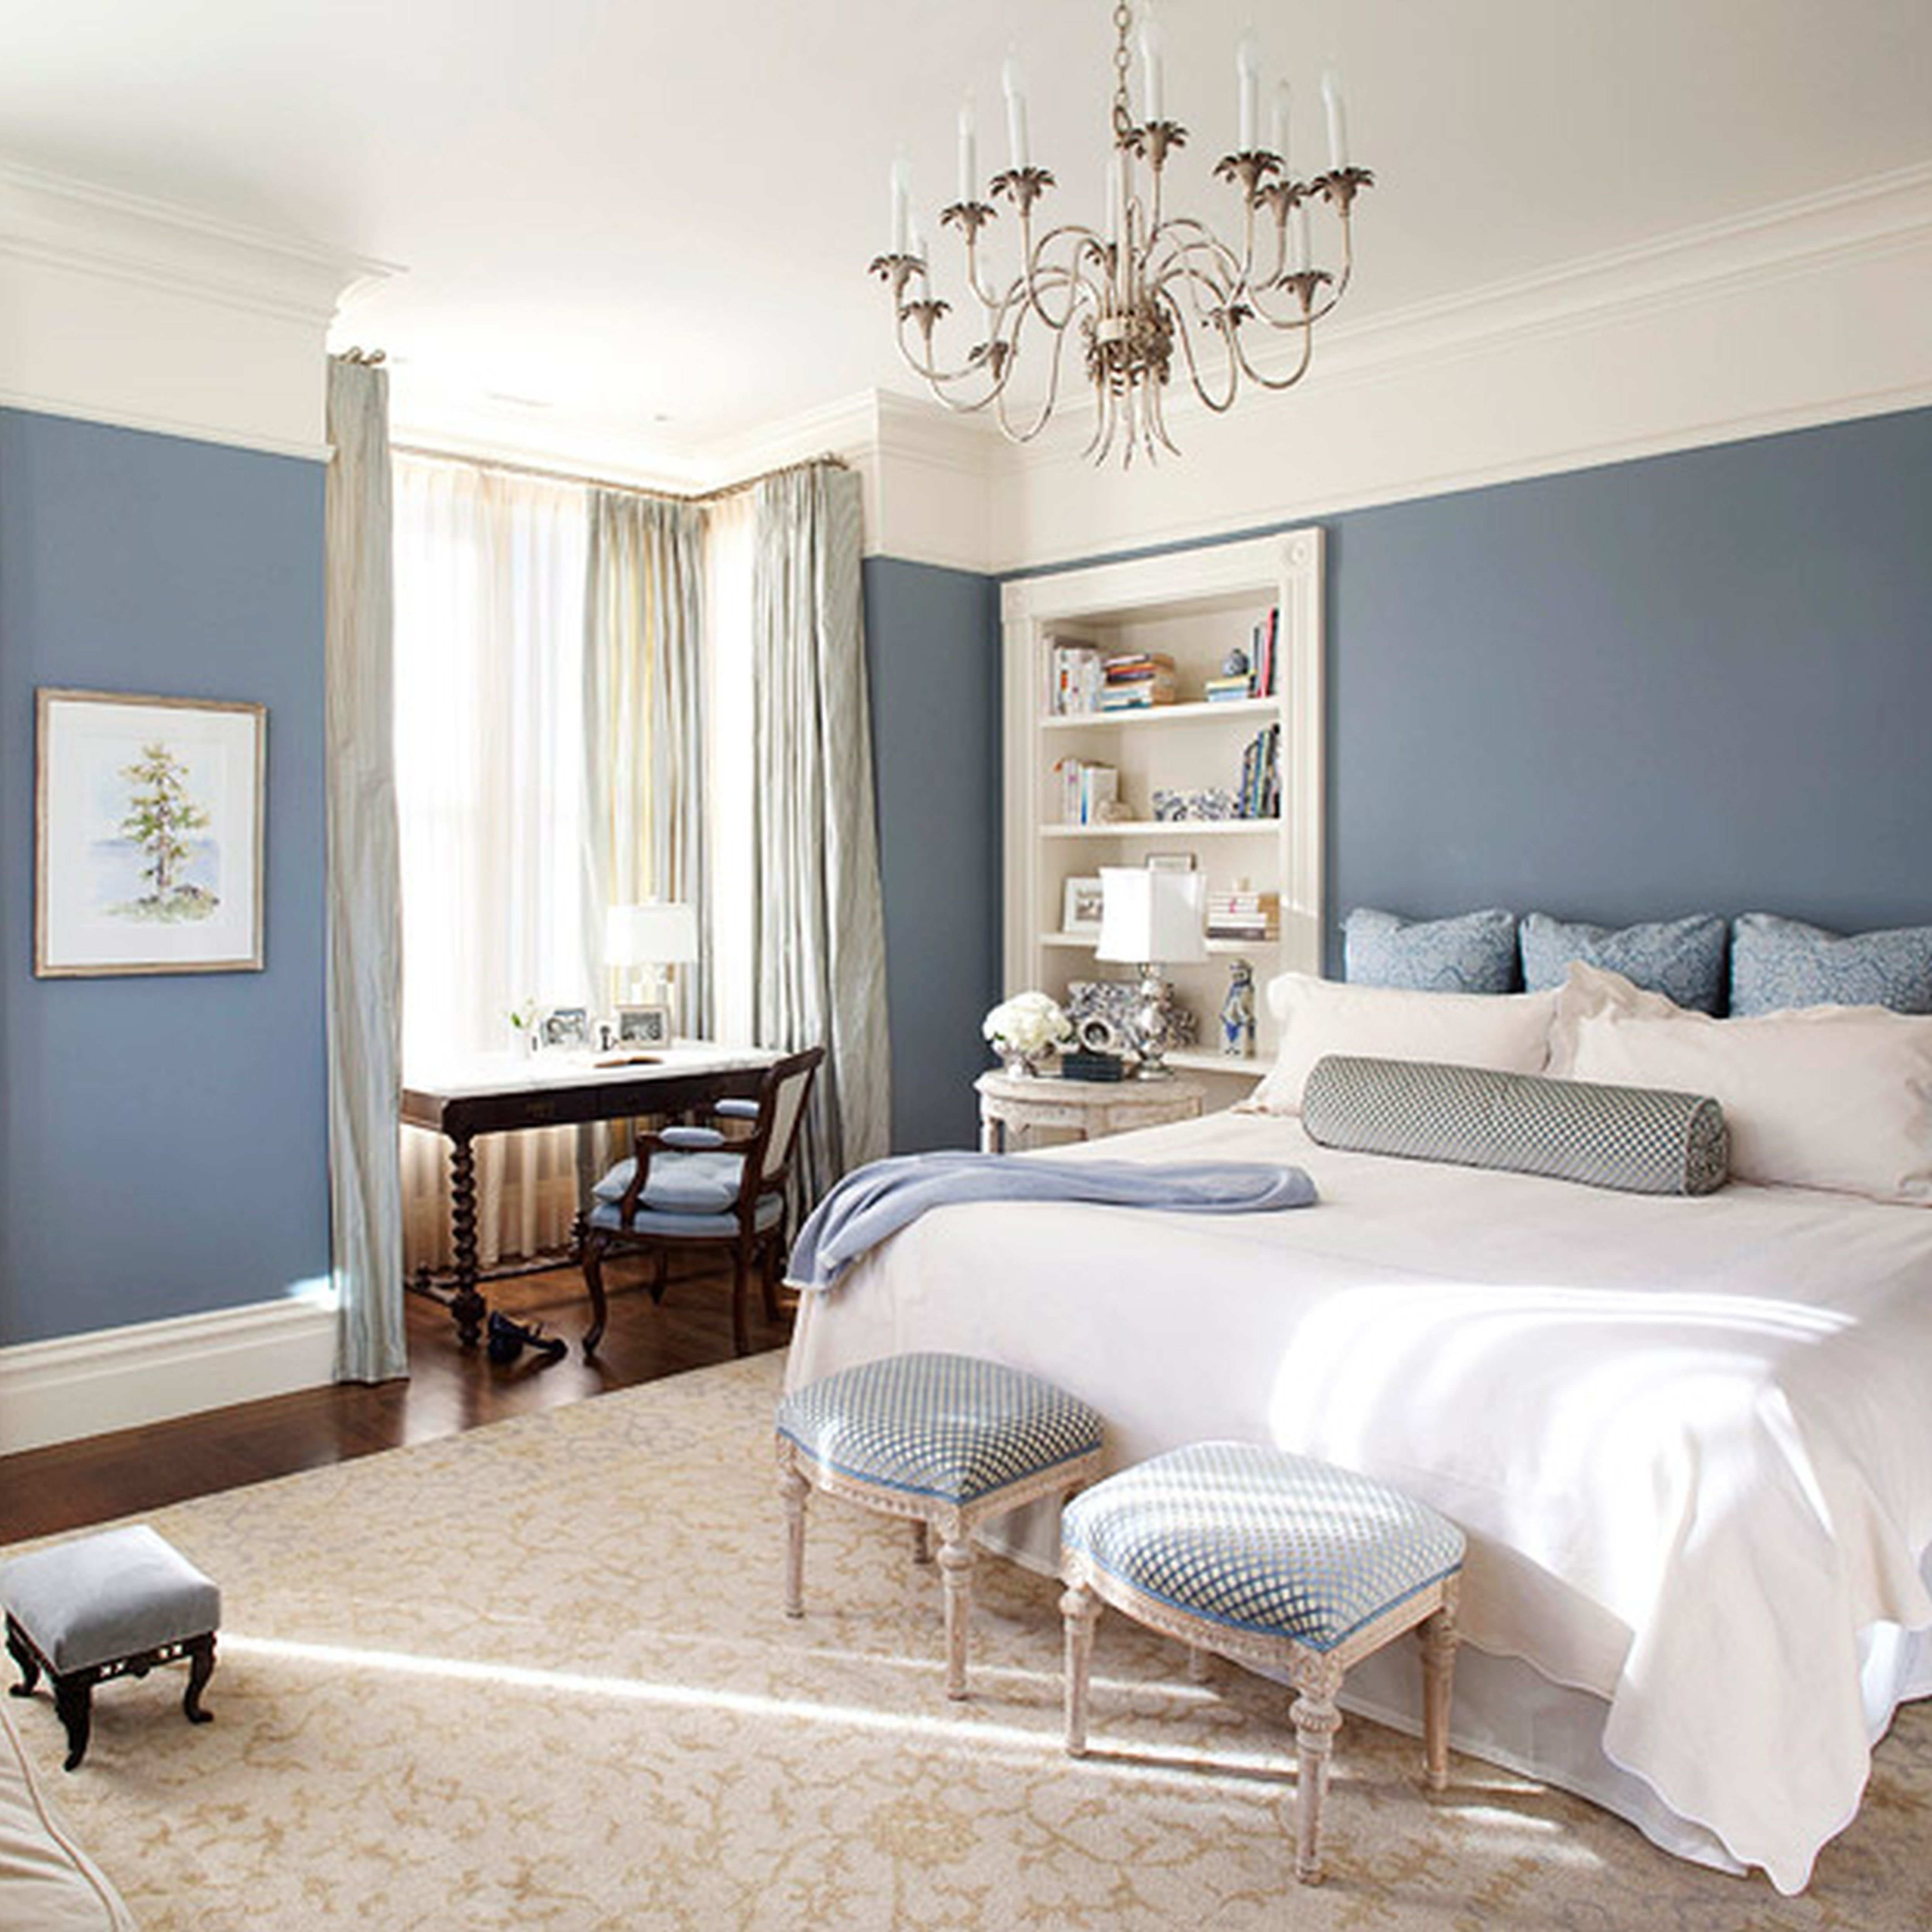 Best Curtains For White Walls In A Bedroom Interior White With Pictures